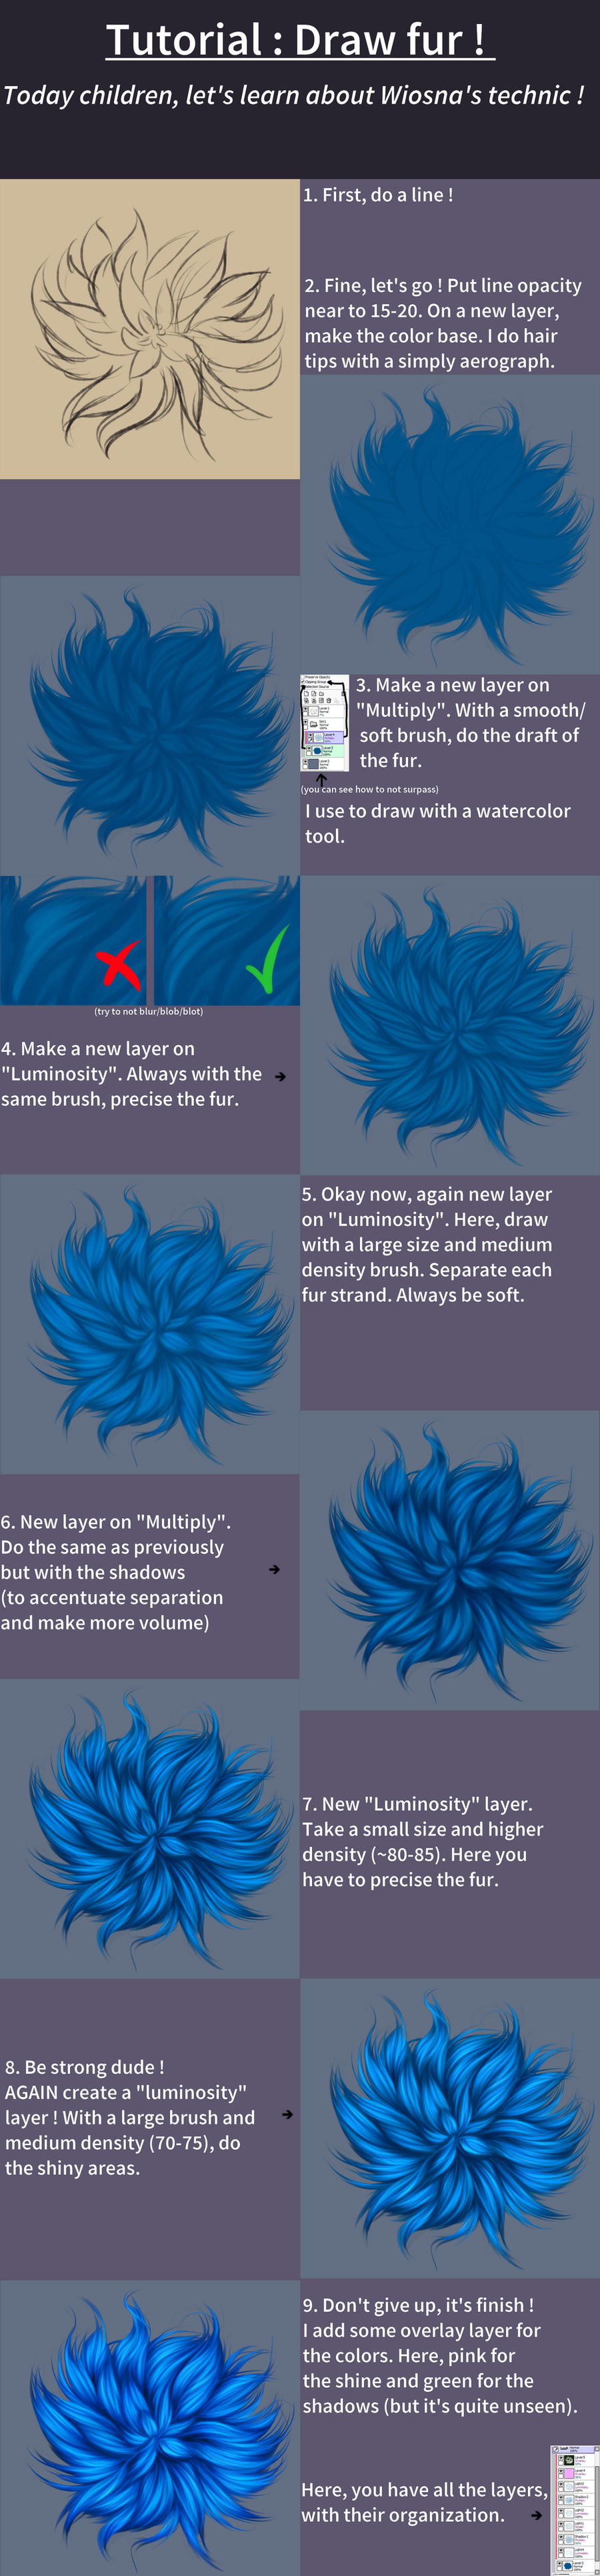 How To Draw Fur ? By Vanilleblanche